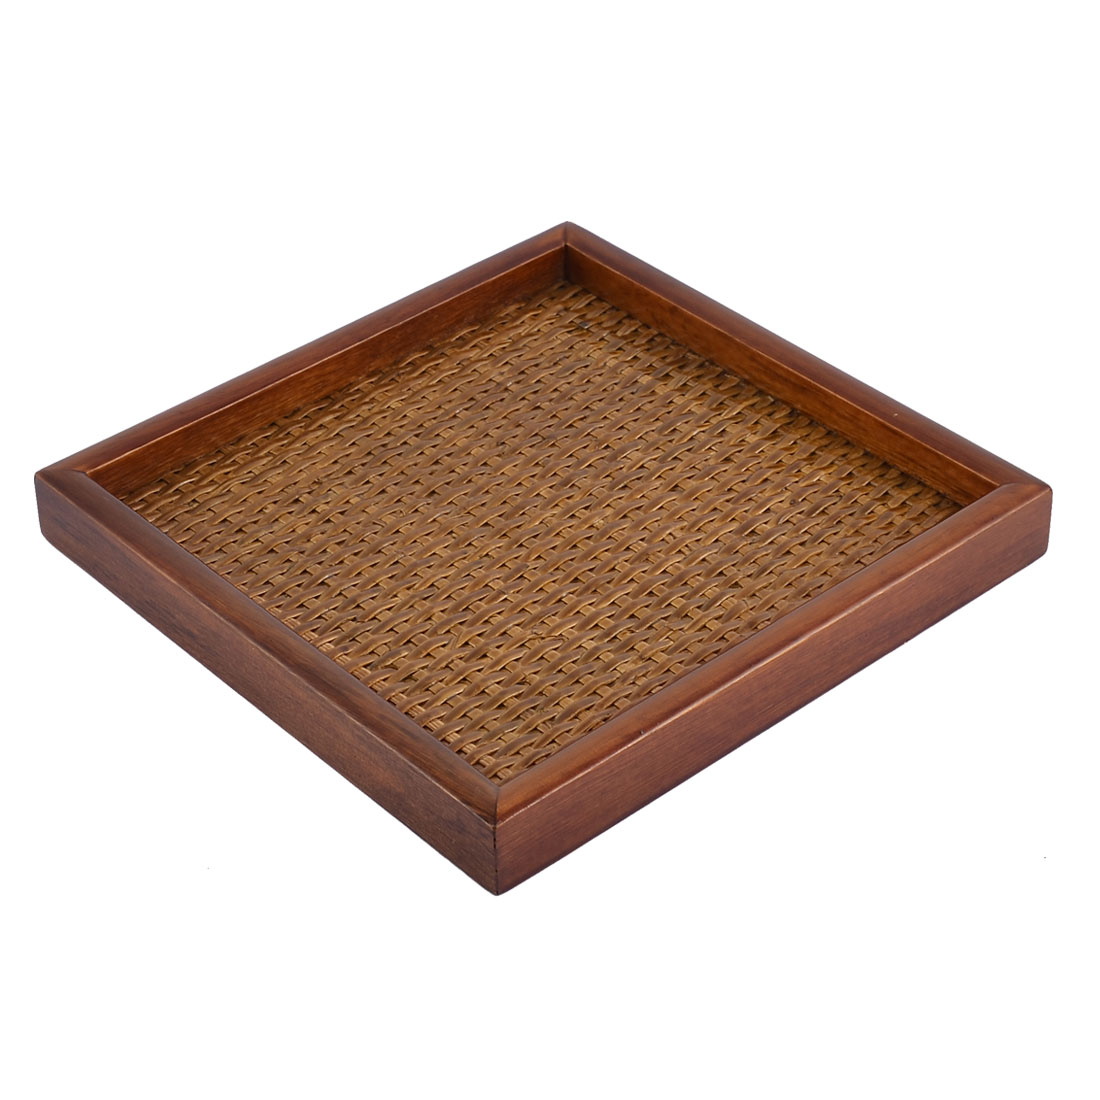 Restaurant Wood Rectangle Shape Lunch Food Serving Tray Container 18*18*2cm